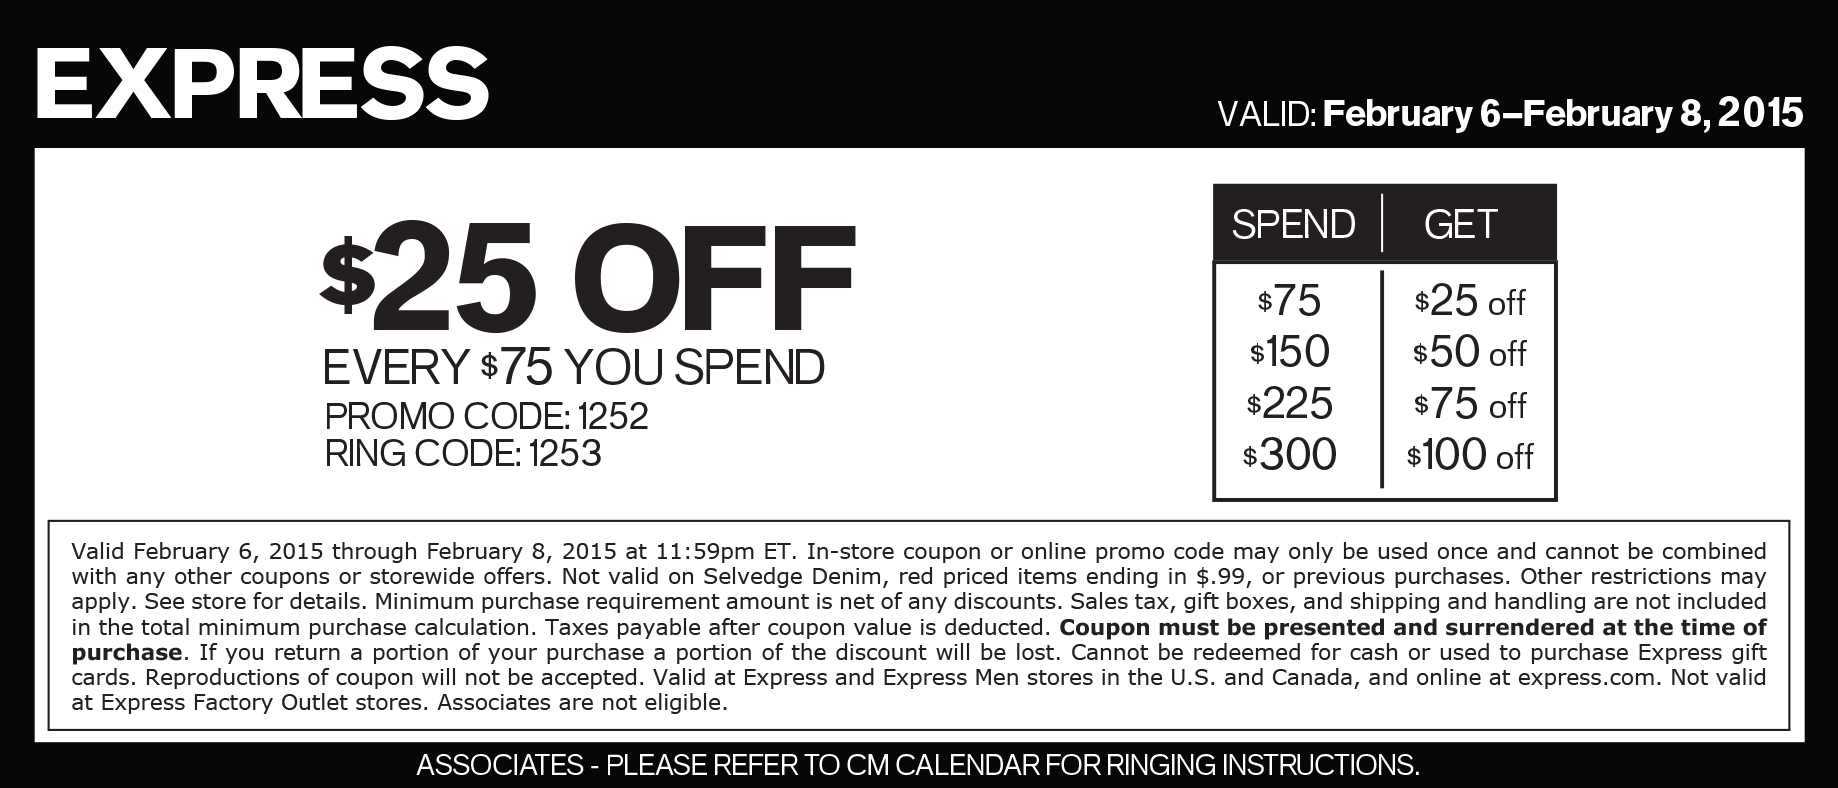 Express coupon code 2018